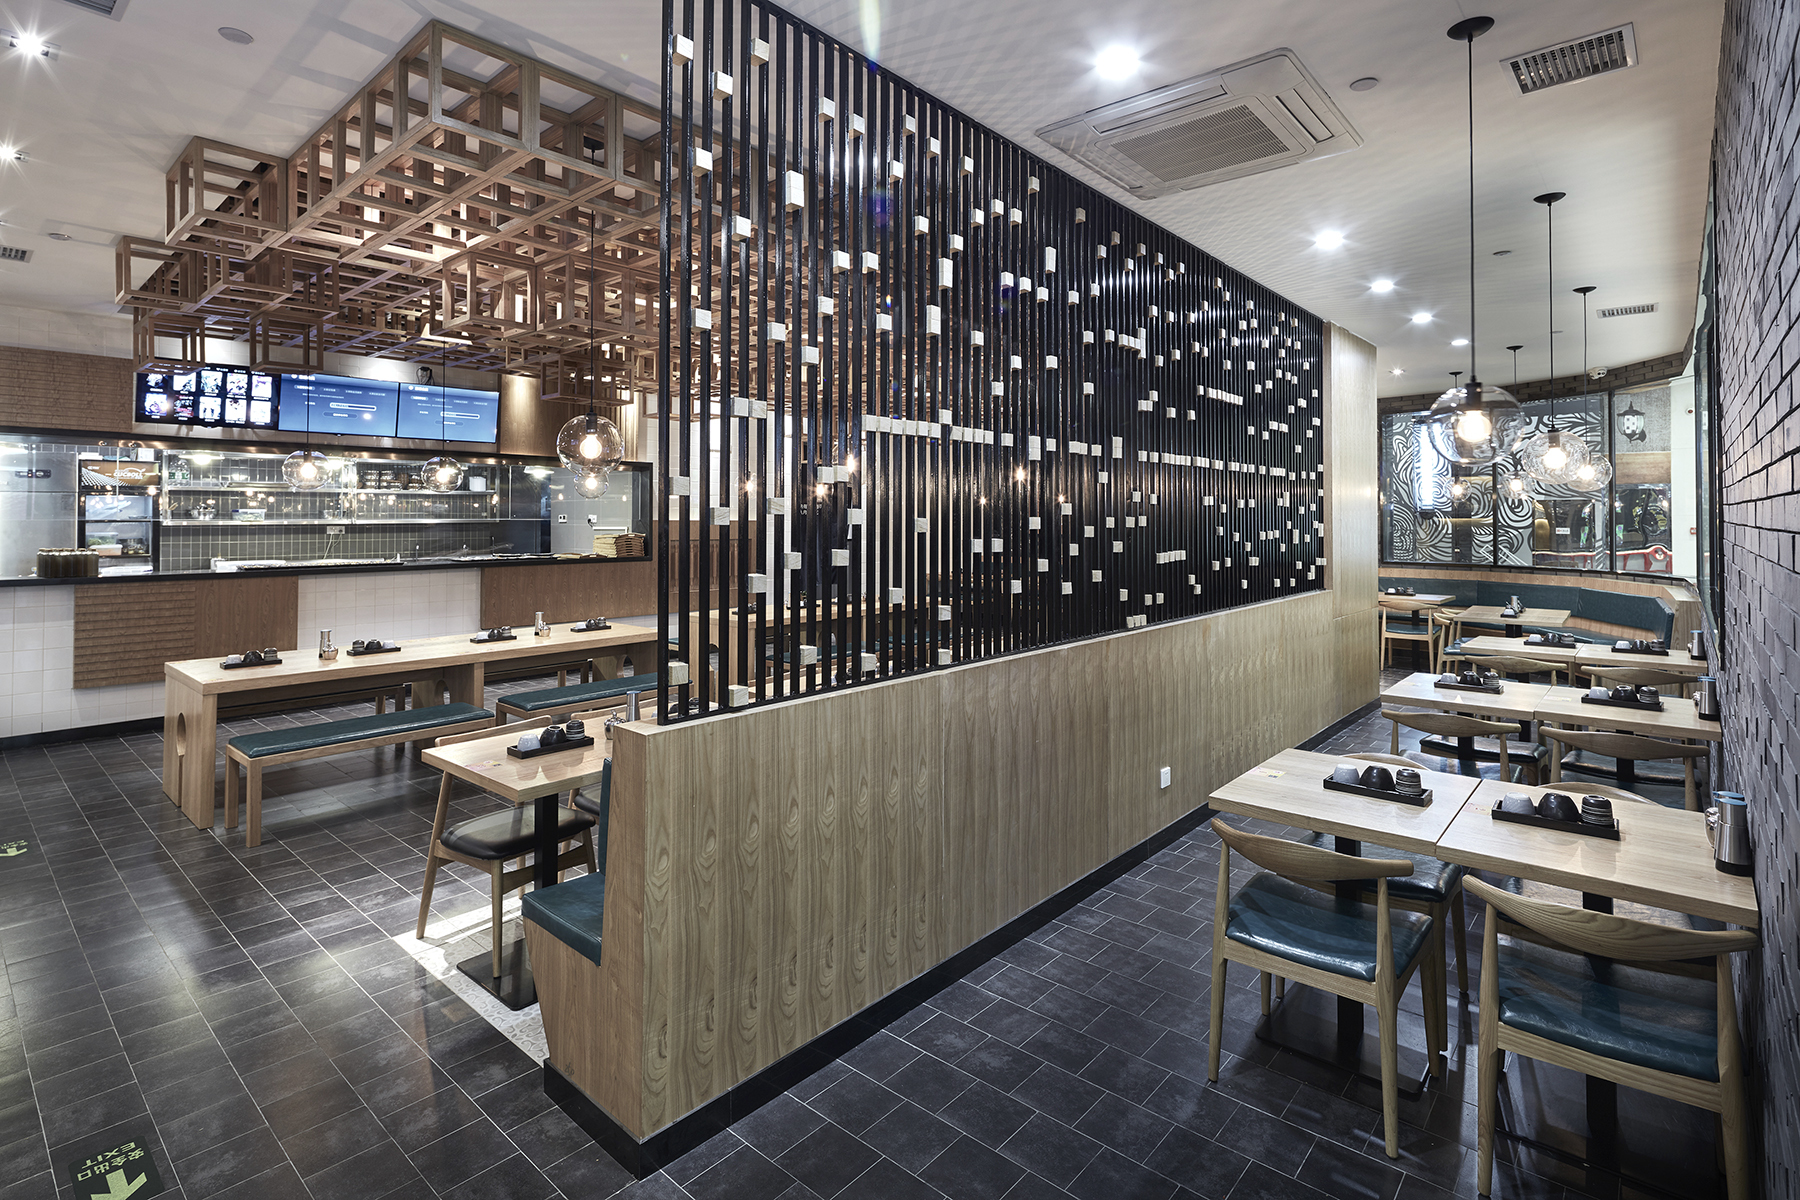 Gallery of 2016 Restaurant & Bar Design Awards Announced - 27